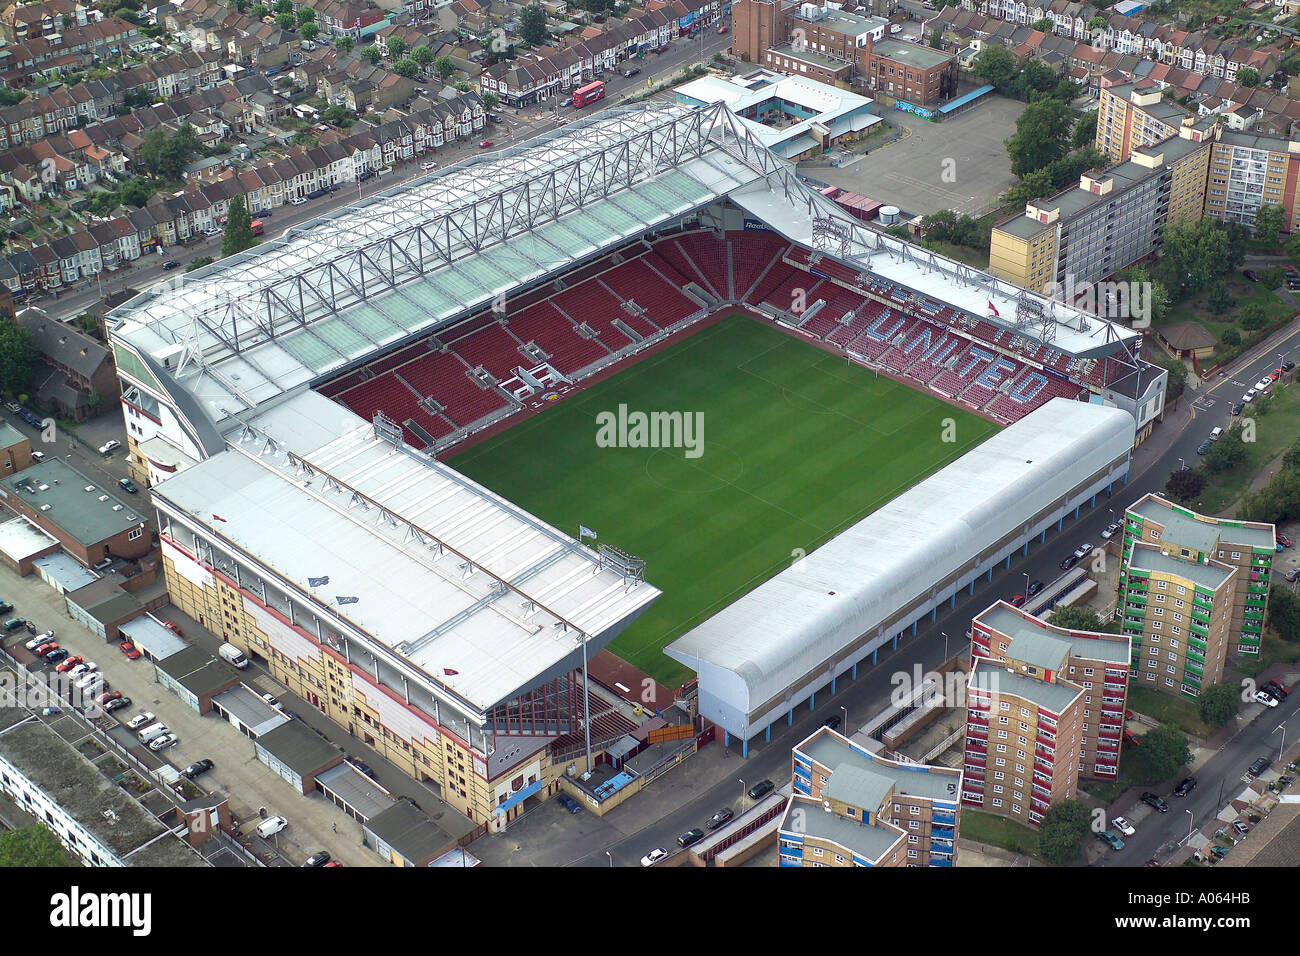 helicopter game downloads with Stock Photo Aerial View Of West Ham United Football Club In London Also Known 5652762 on 387274 together with Prepositions Of Place as well Gta Vice City Cheat Codes For Pc Guns in addition 2015 04 09 Obisidian Launches Fifth Early Access Test For Armored Warfare further Blitz Brigade.